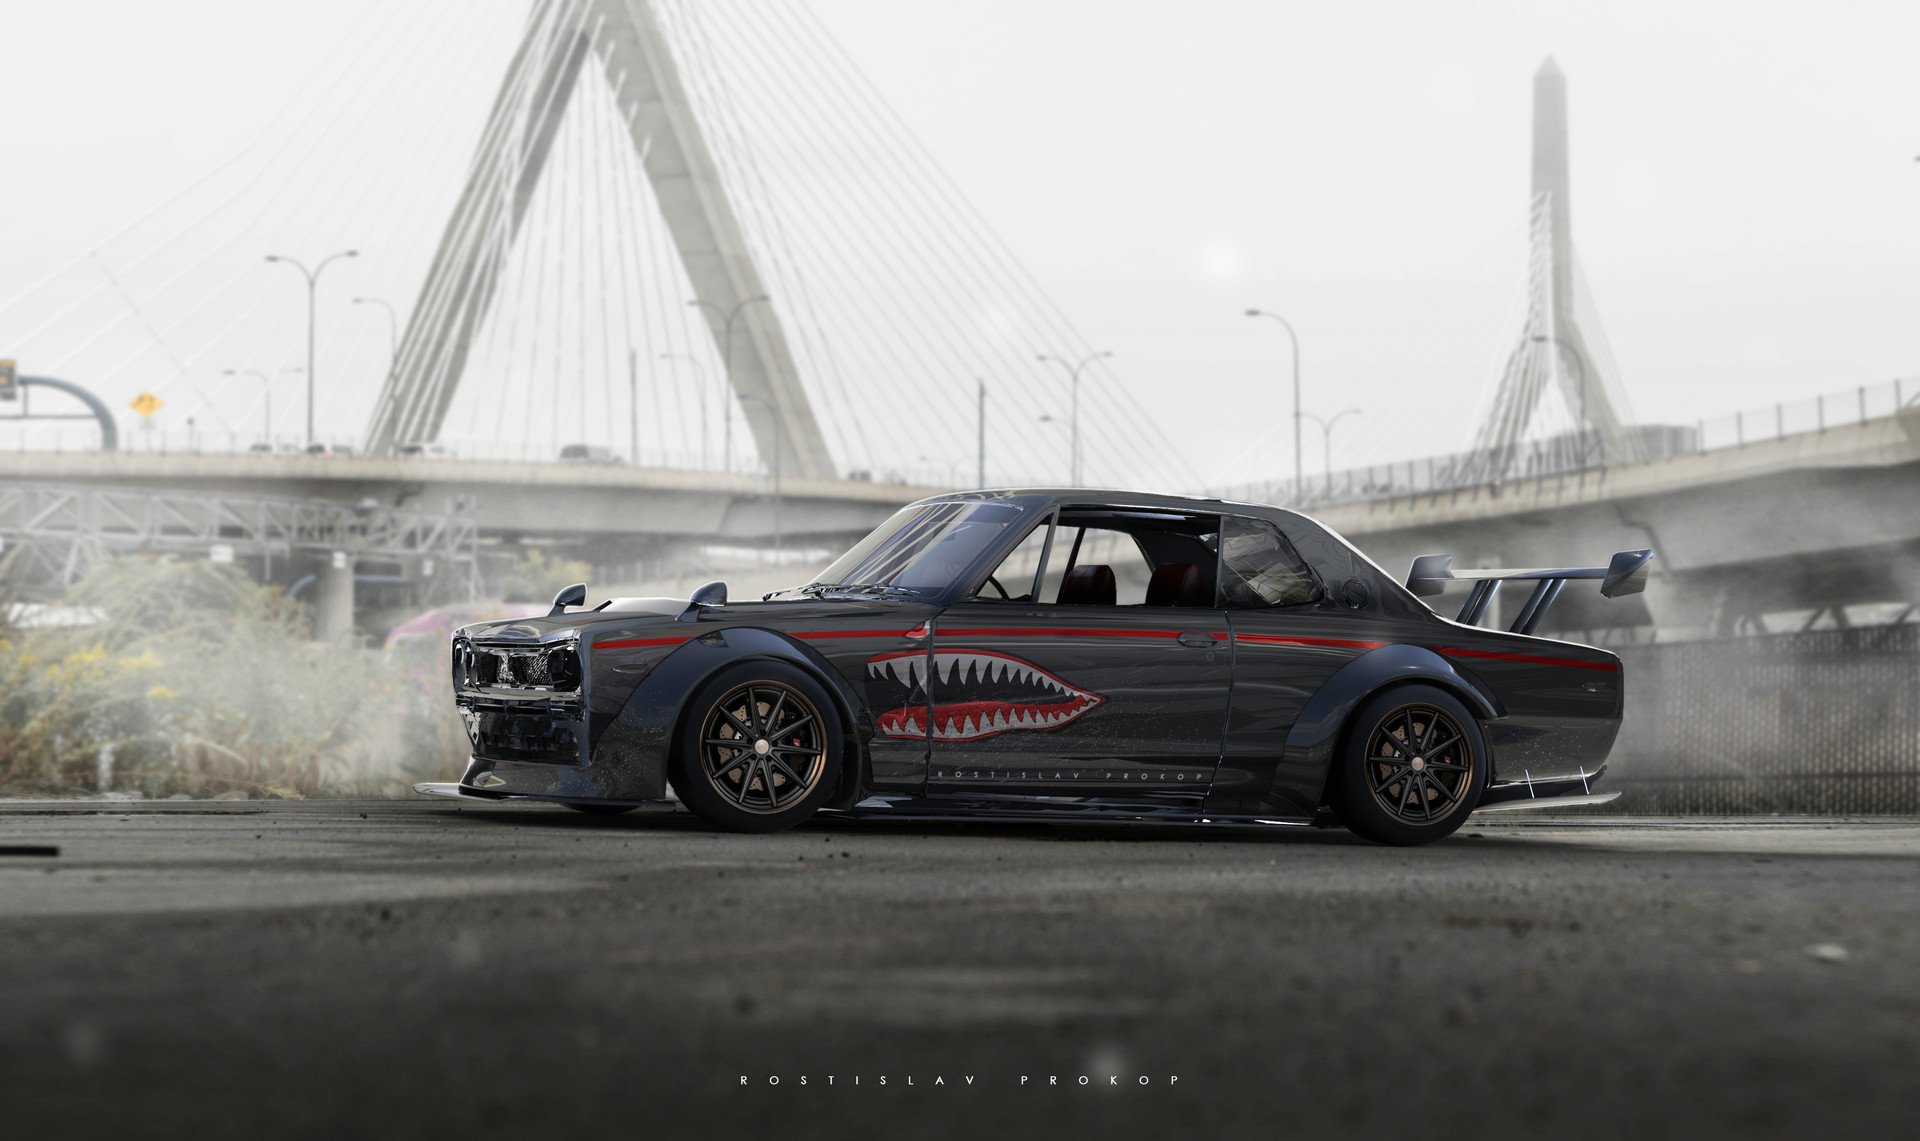 General 1920x1141 car Nissan city digital art futuristic Rostislav Prokop